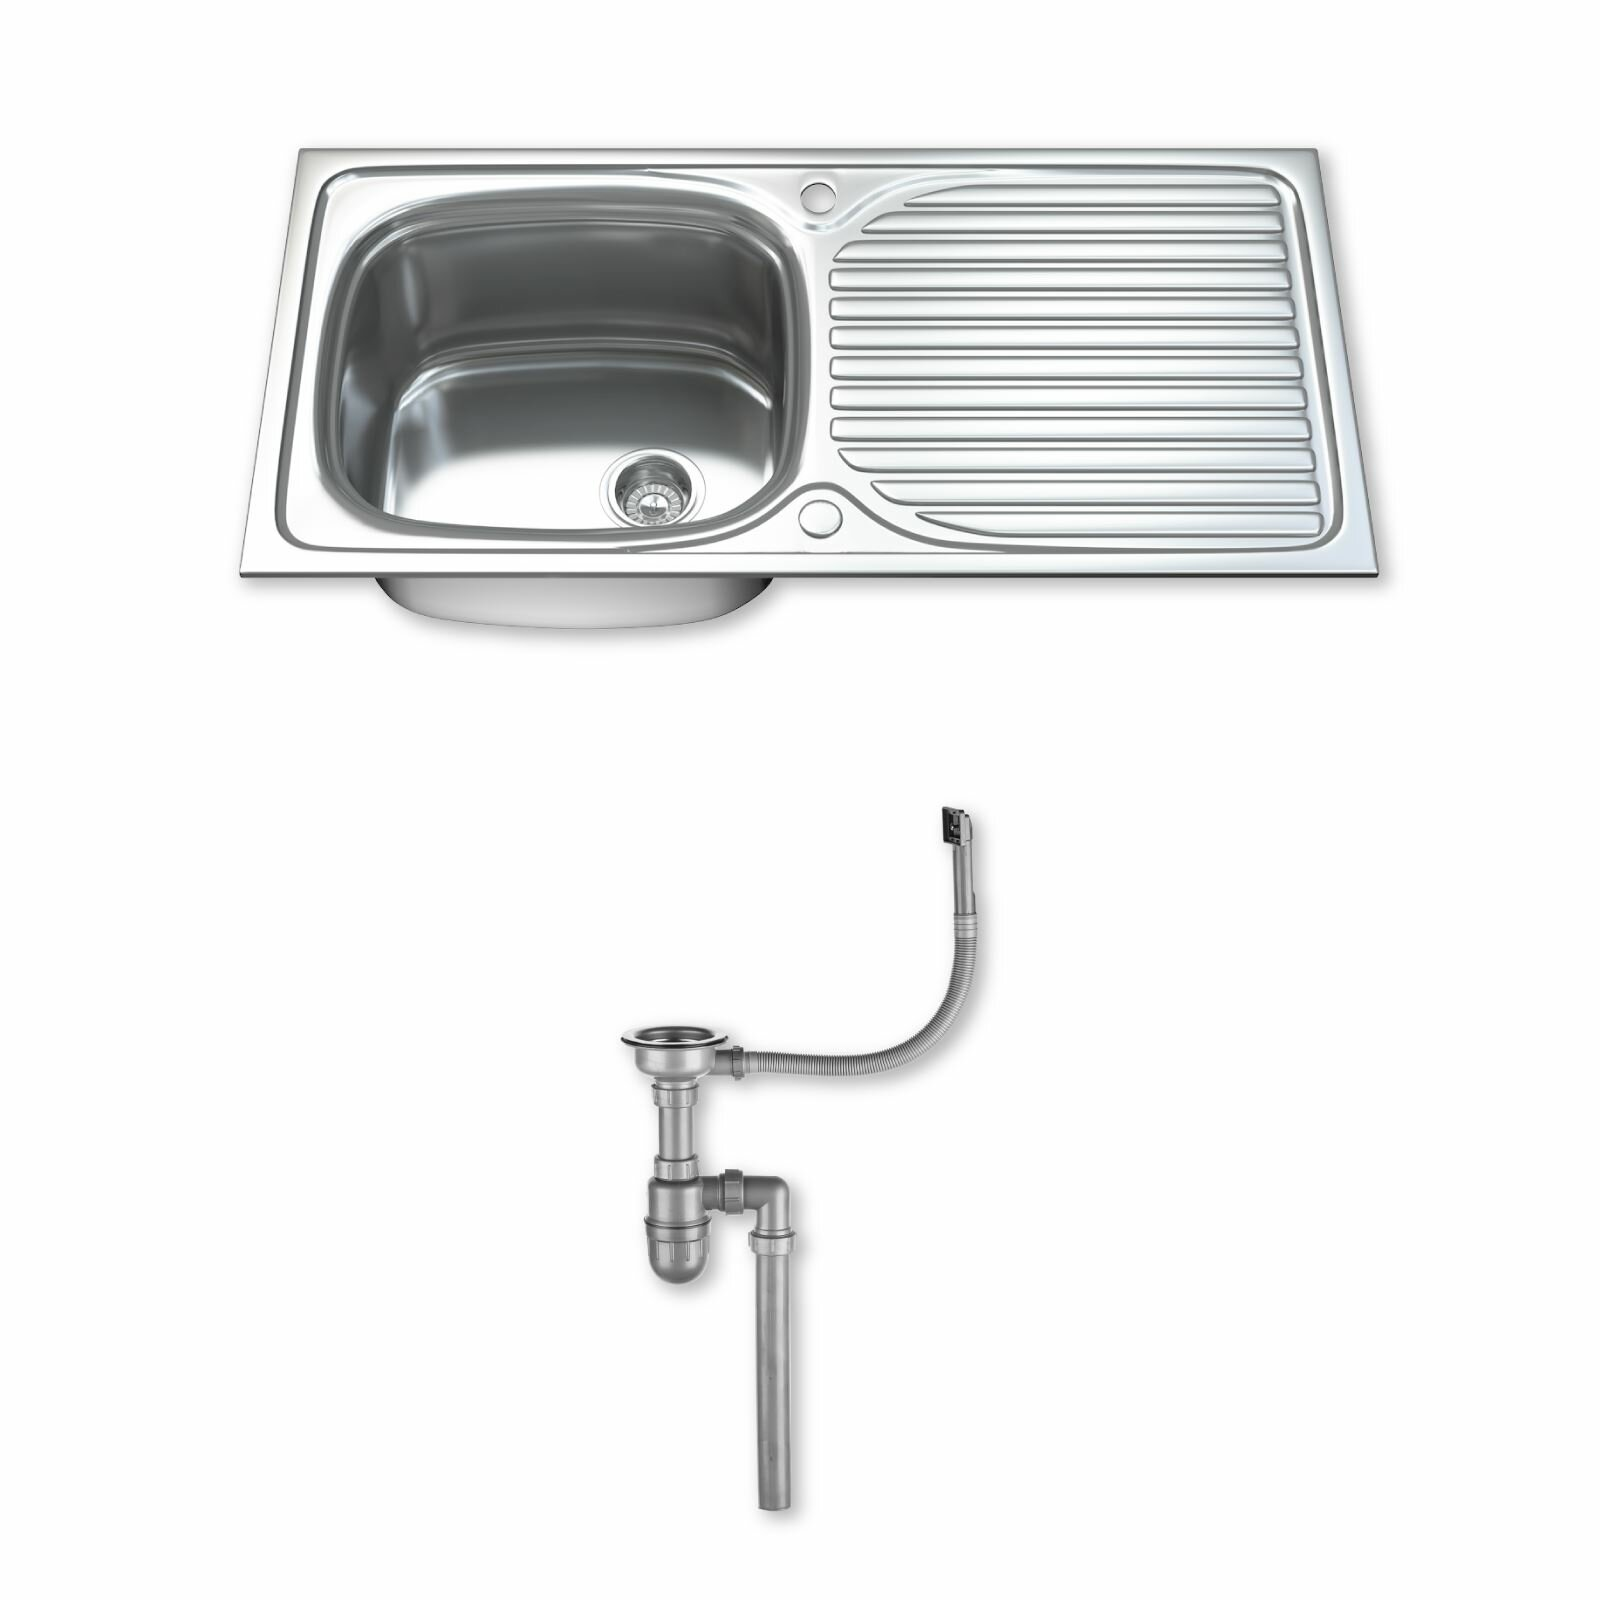 Dihl 100cm x 50cm Stainless Steel Kitchen Sink Wayfair.co.uk